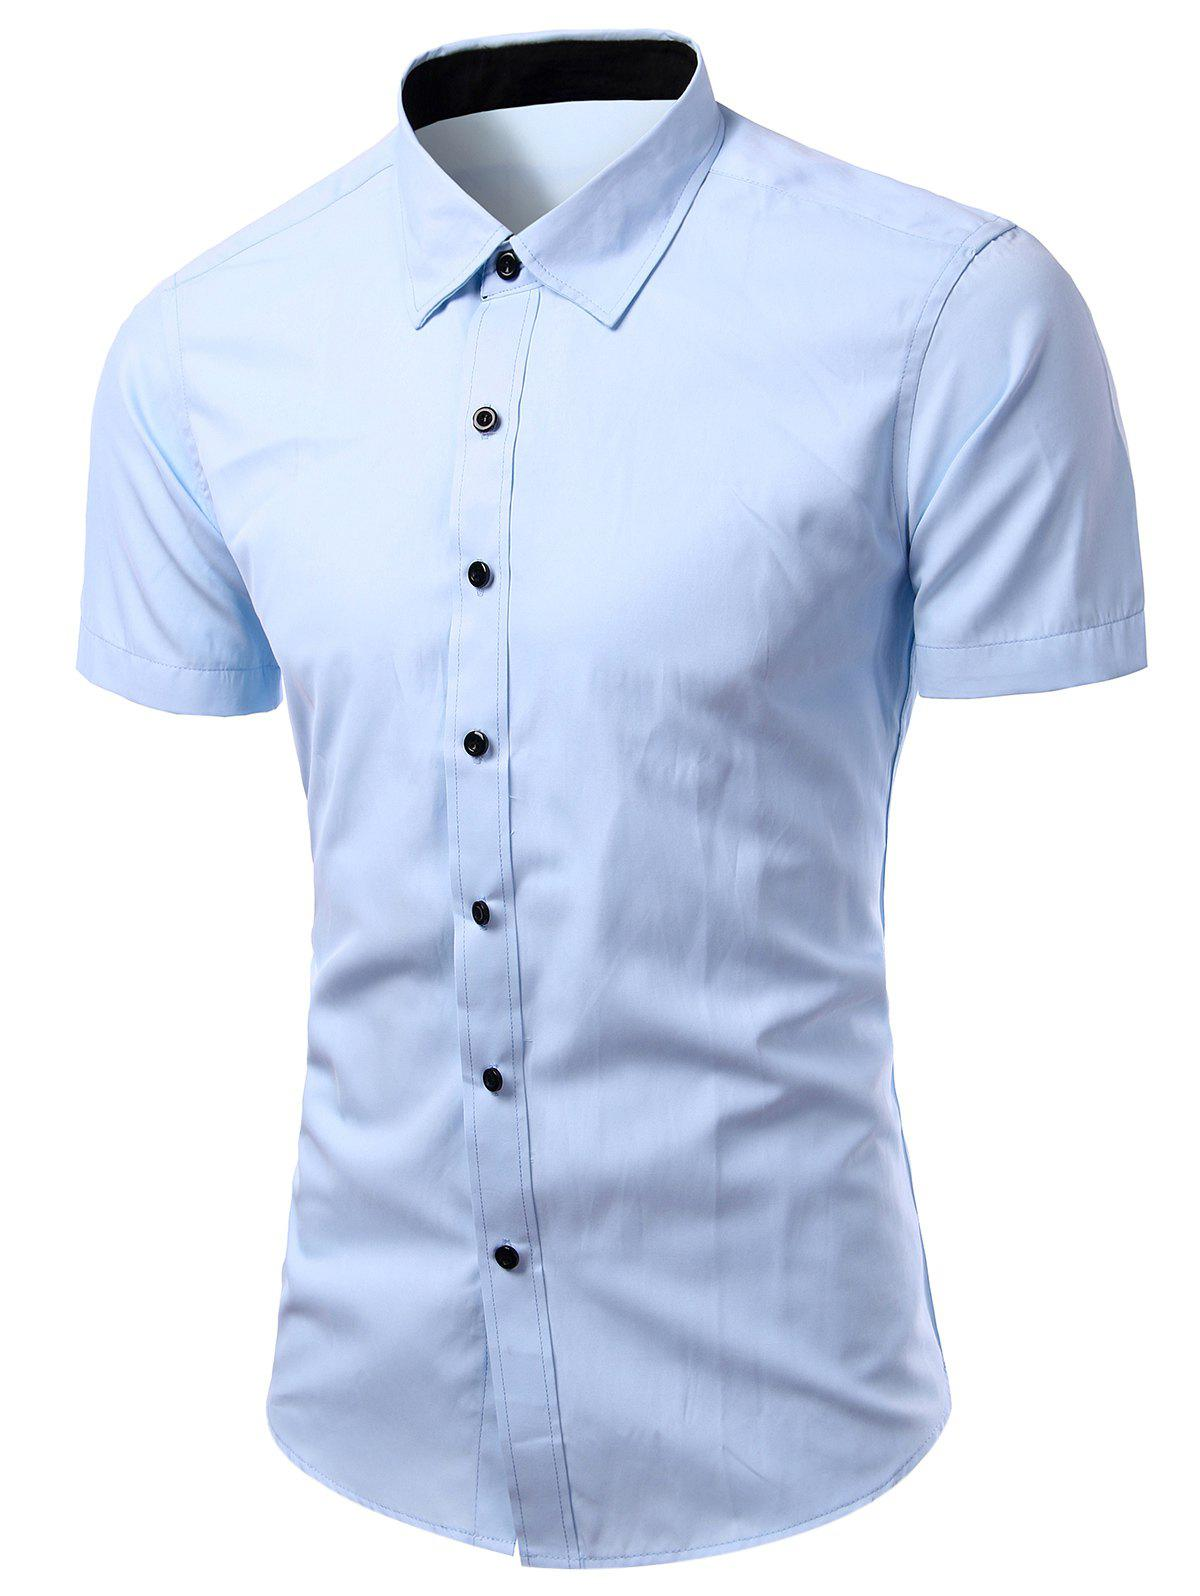 Simple Turn-Down Collar Solid Color Short Sleeve Shirt For Men - LIGHT BLUE 3XL